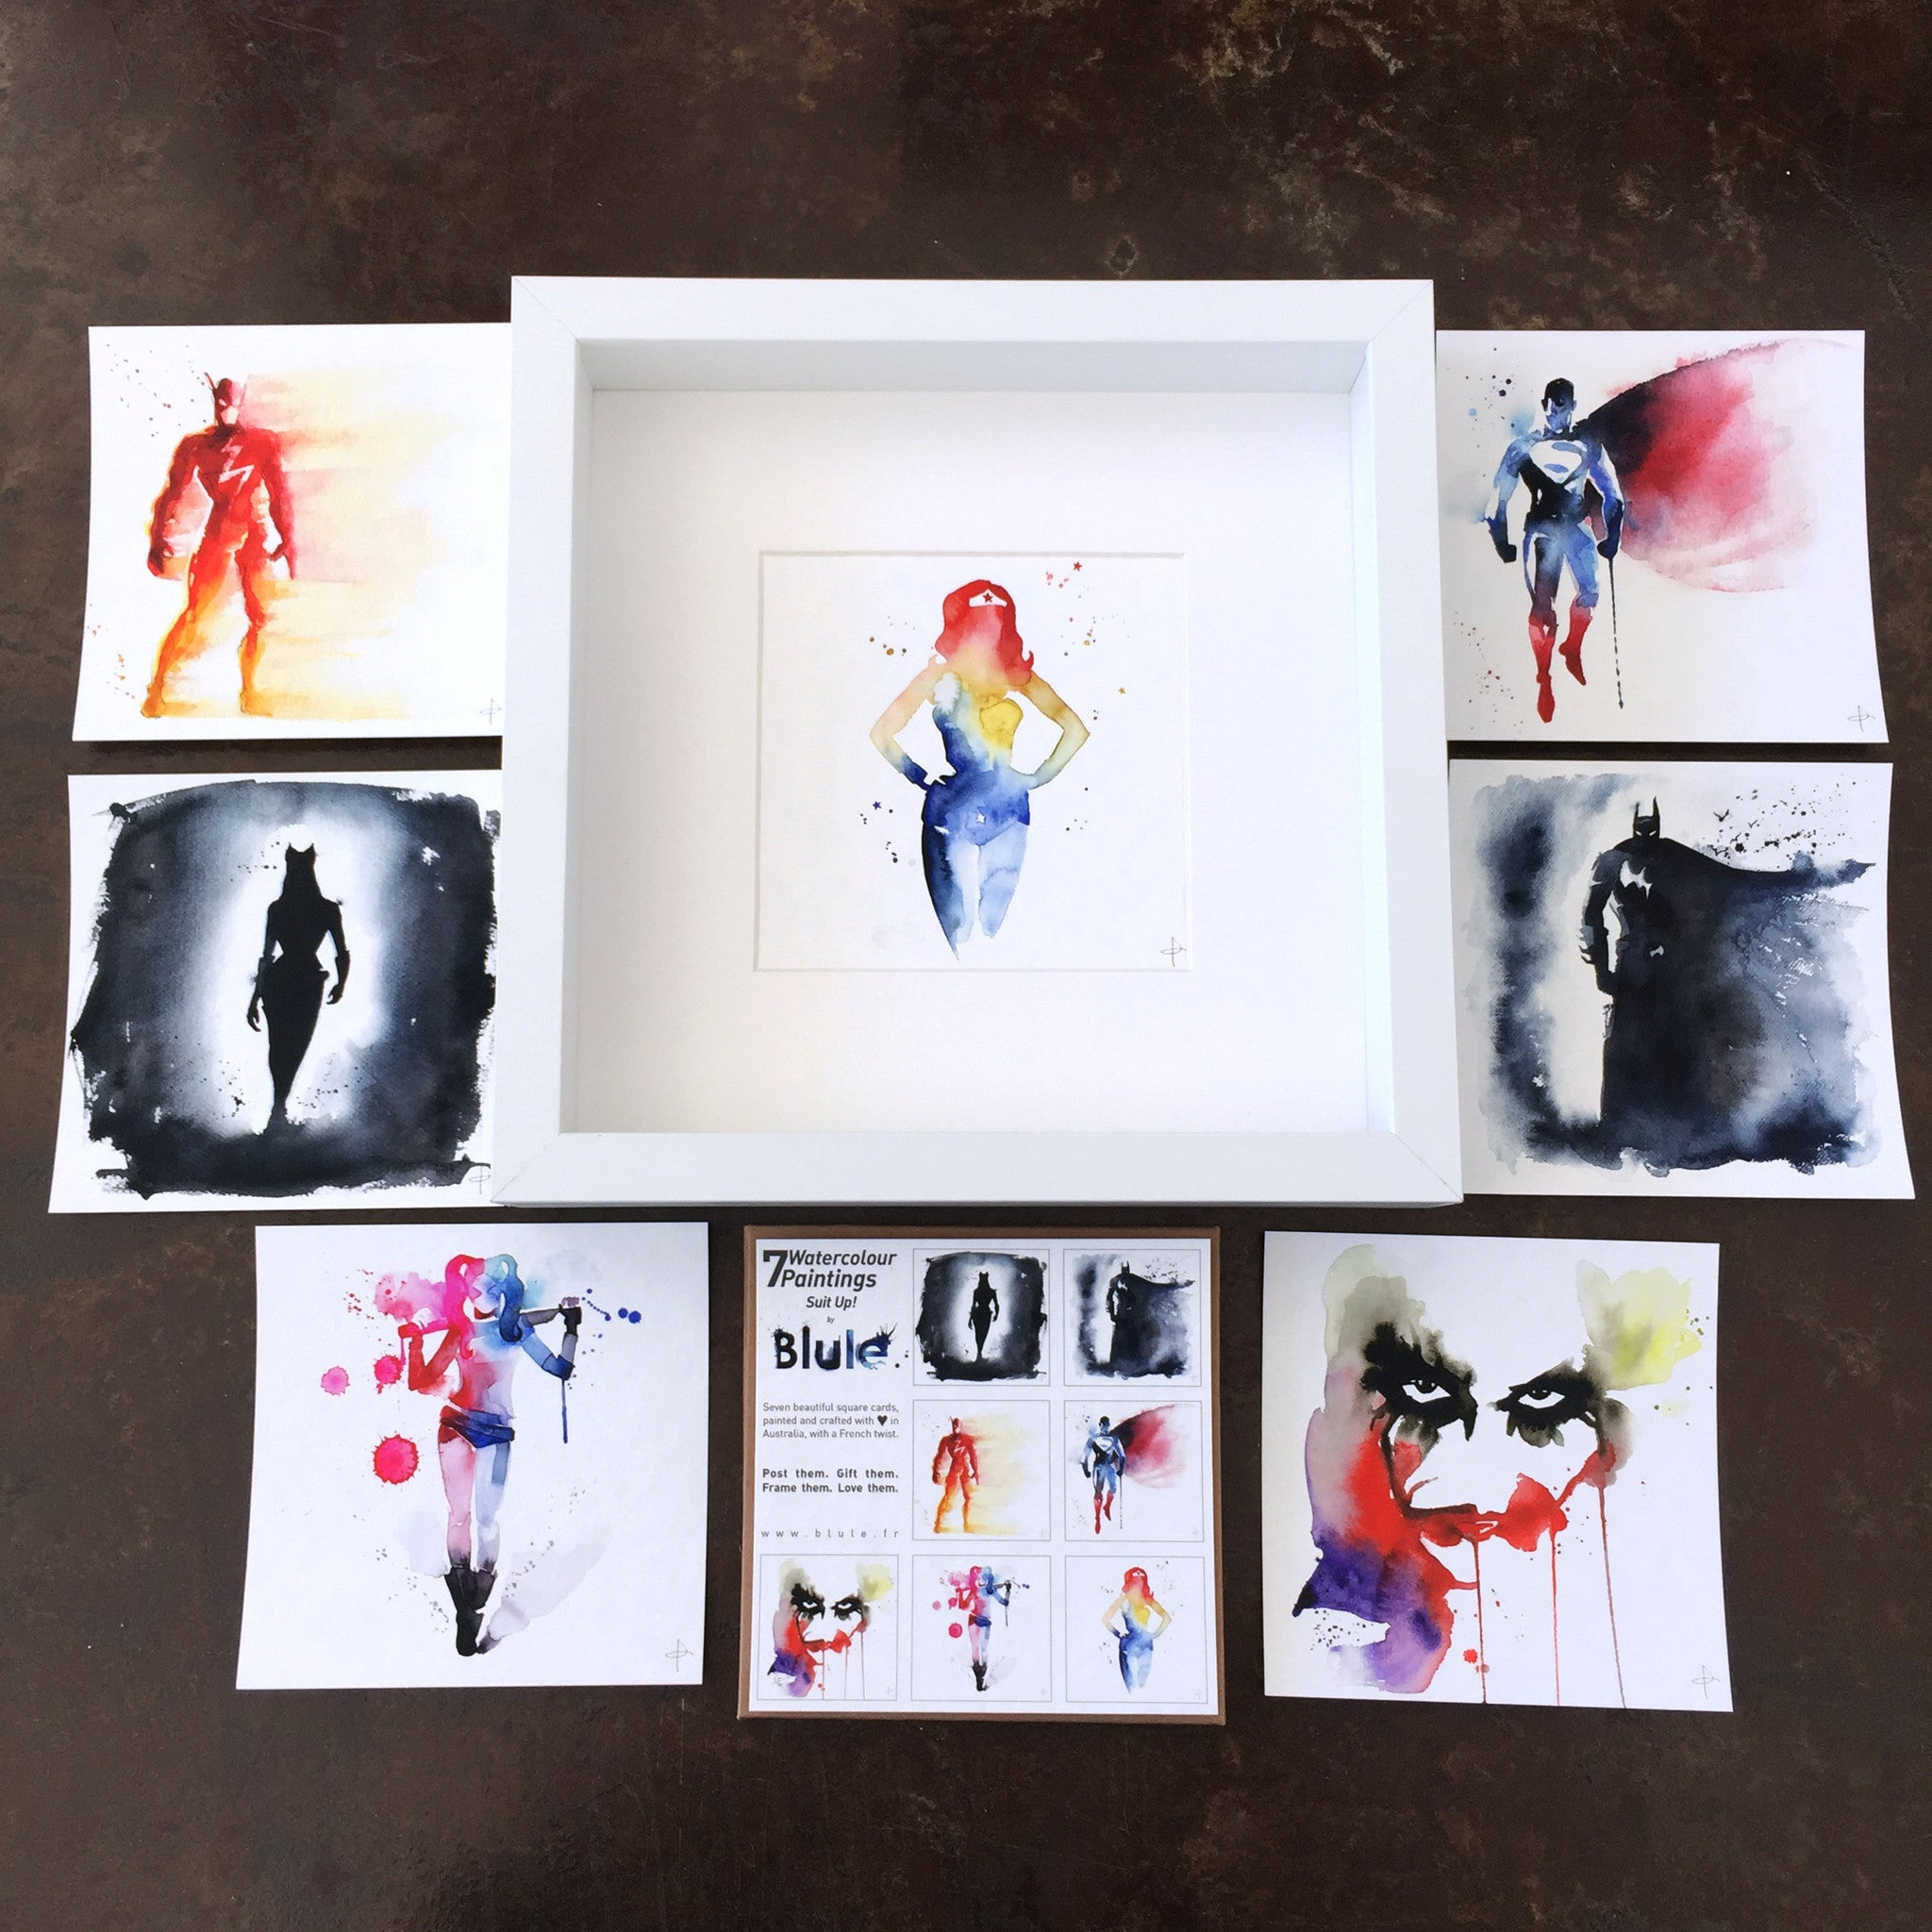 7 Watercolour Cards Paintings